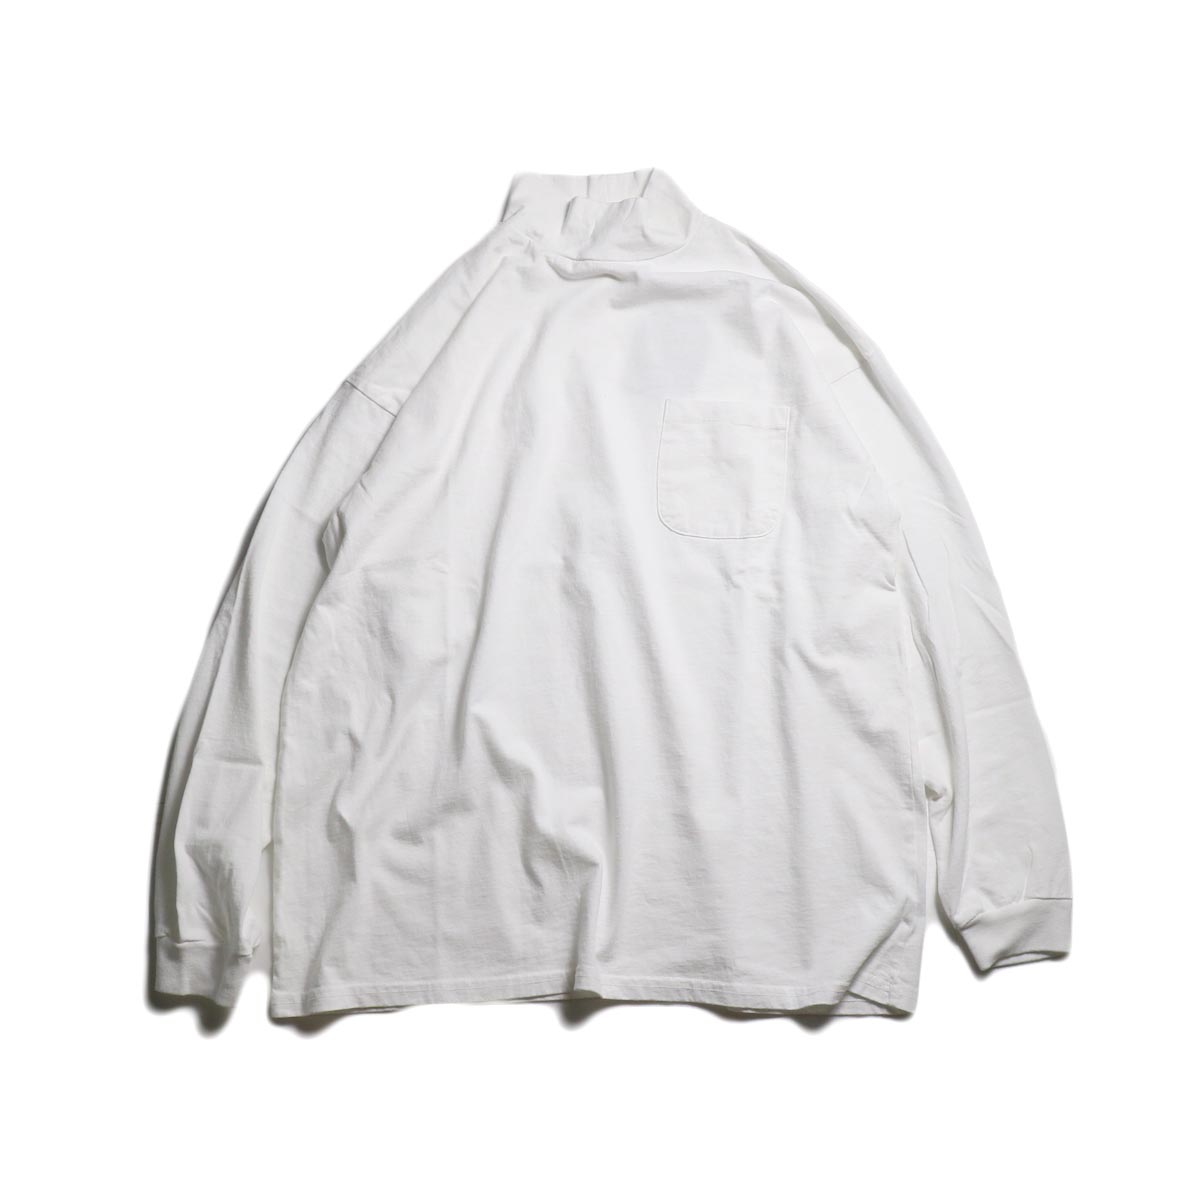 UNIVERSAL PRODUCTS / HEAVY WEIGHT L/S MOCK NECK T-SHIRT (White)